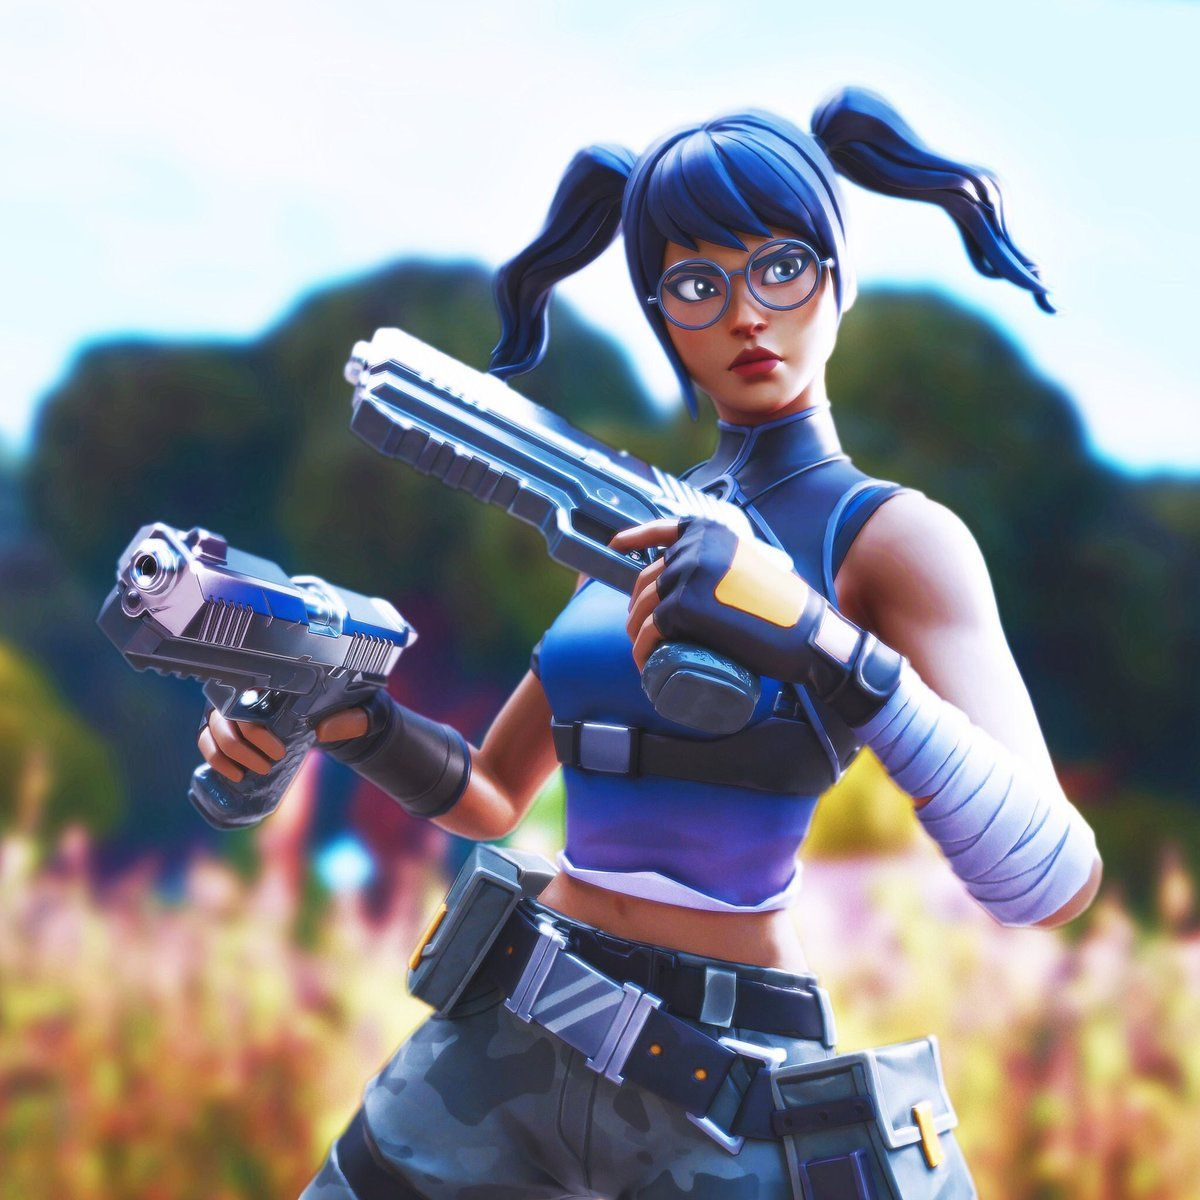 Crystal Skin Fortnite Wallpapers Top Free Crystal Skin Fortnite Backgrounds Wallpaperaccess